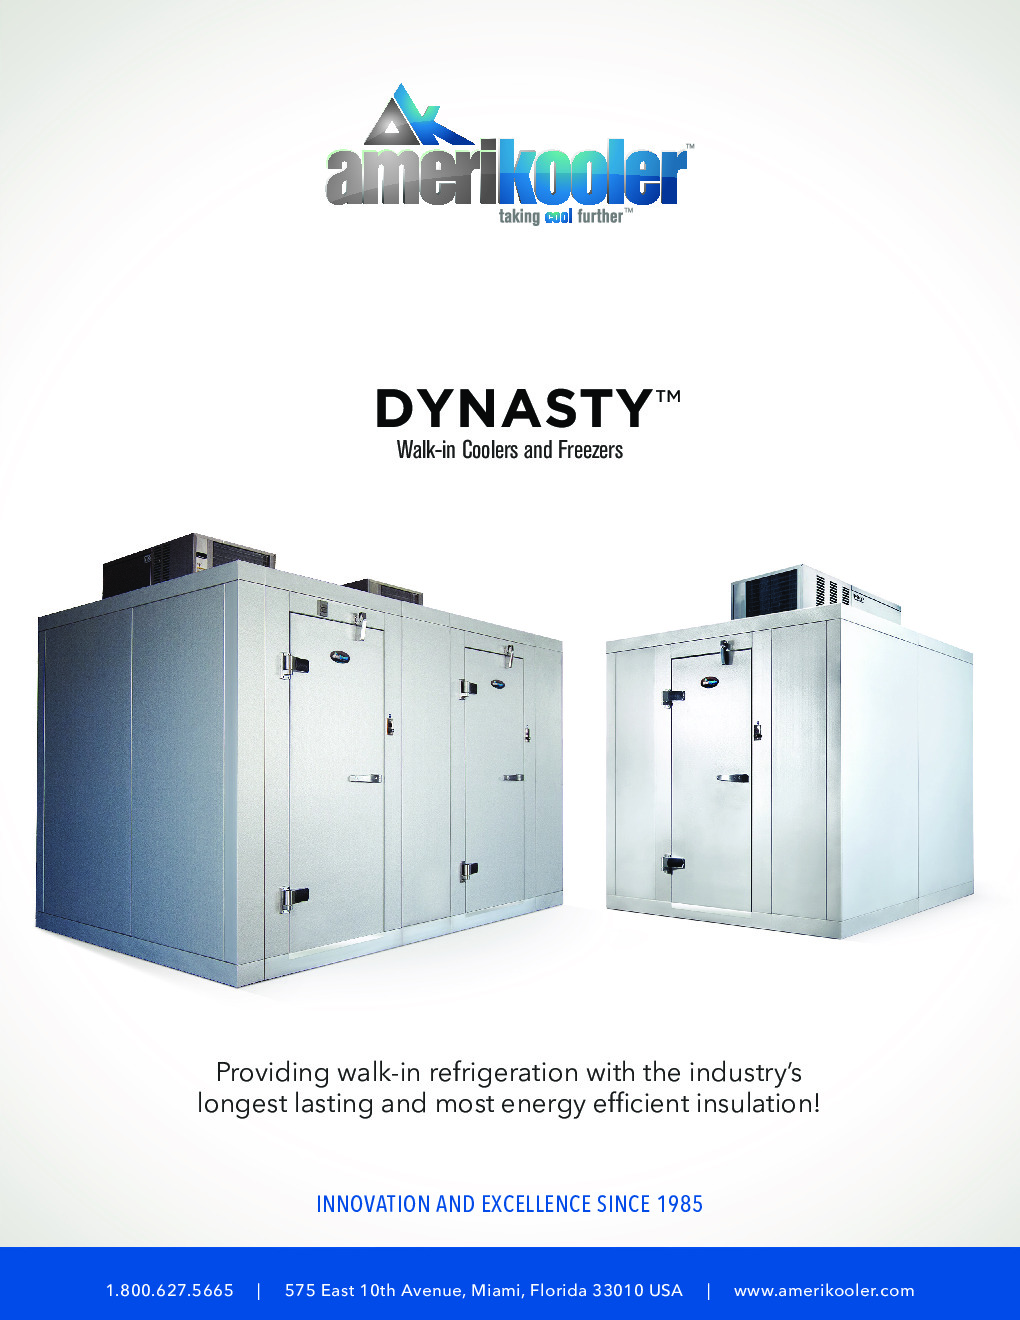 AmeriKooler DW071377N-5/8-RM 7' X 13' Walk-In Cooler, 8' L Cooler without Floor and 5' L Freezer, Remote